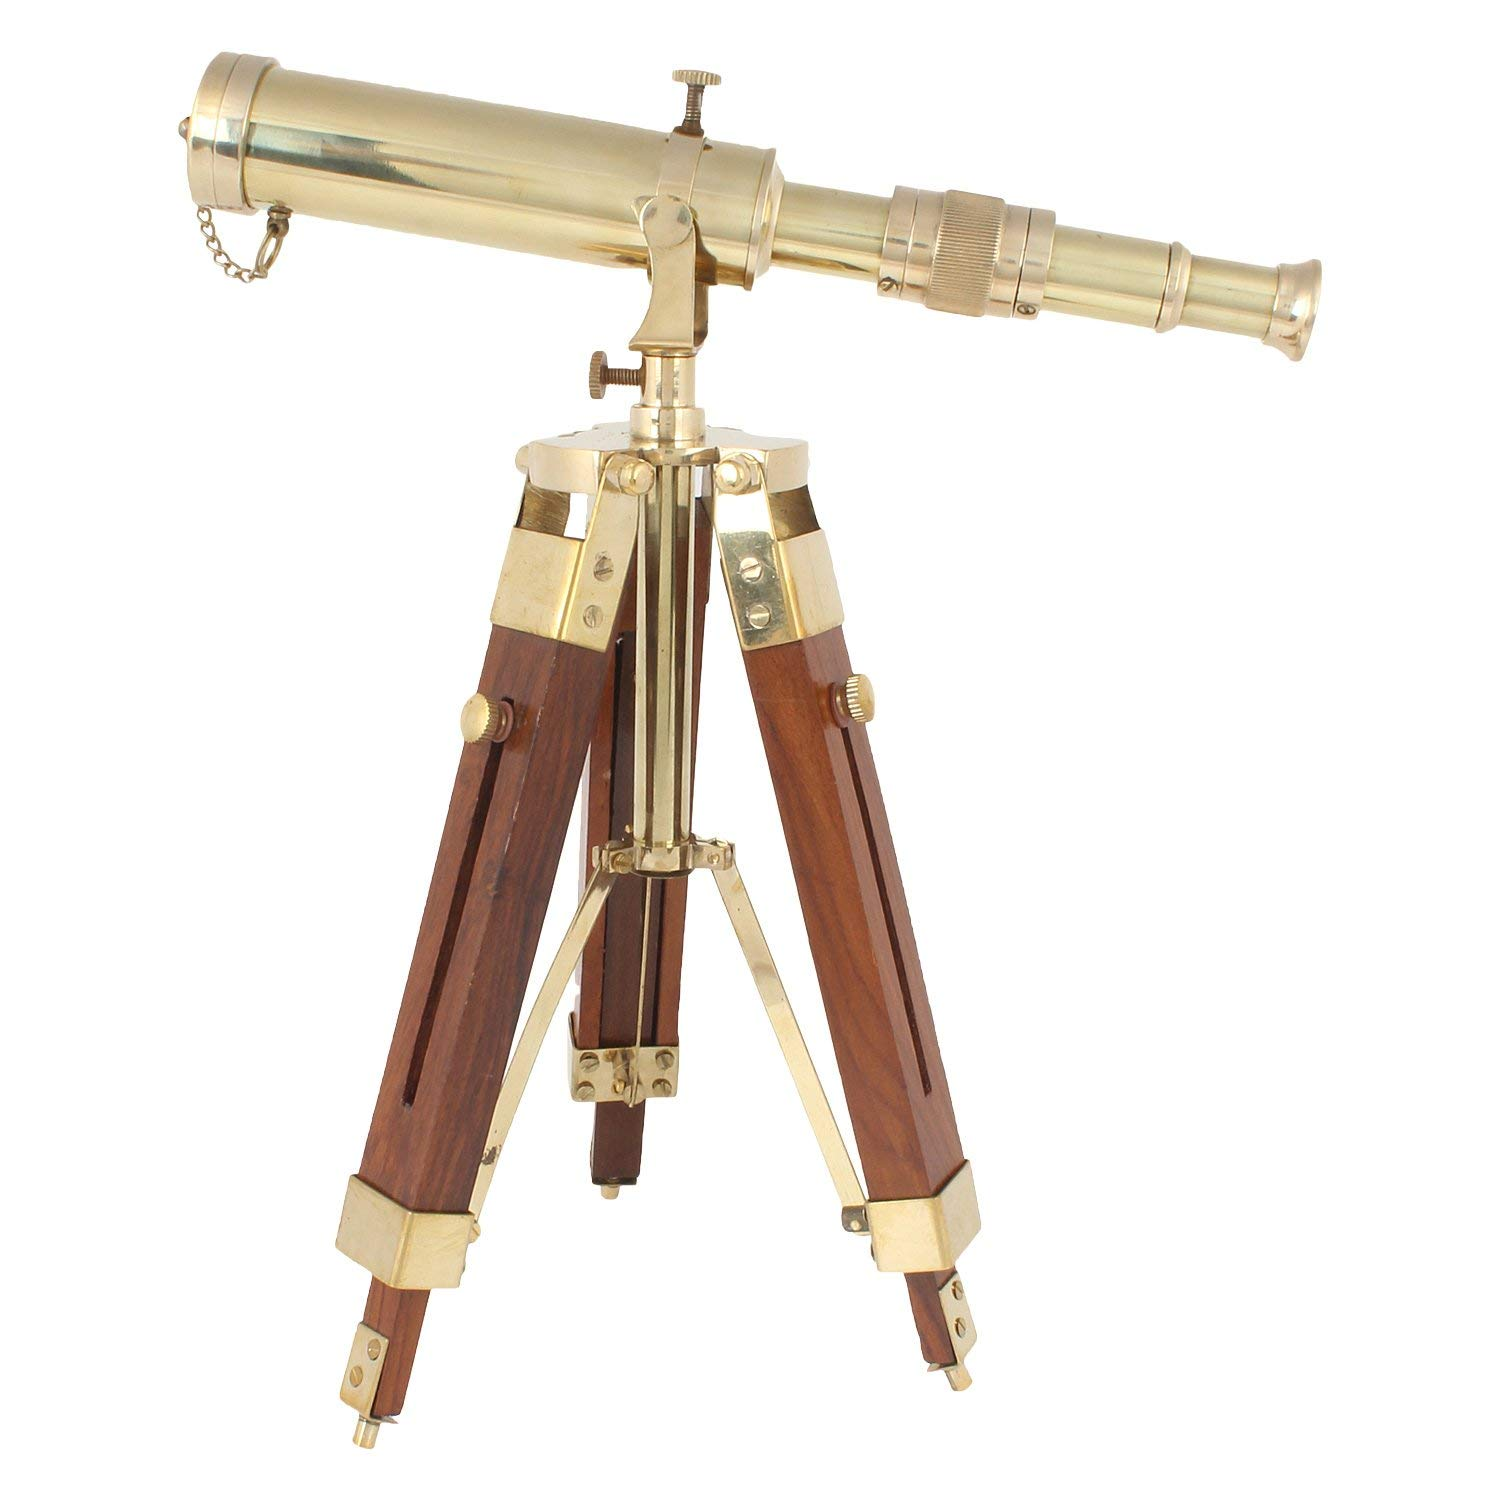 Marine Art Replicas Vintage Brass Telescope on Tripod Stand use DF Lens Antique Desktop Telescope for Home Decor & Table Accessory Nautical Spyglass Telescope for Navy and Outdoor Adventures.